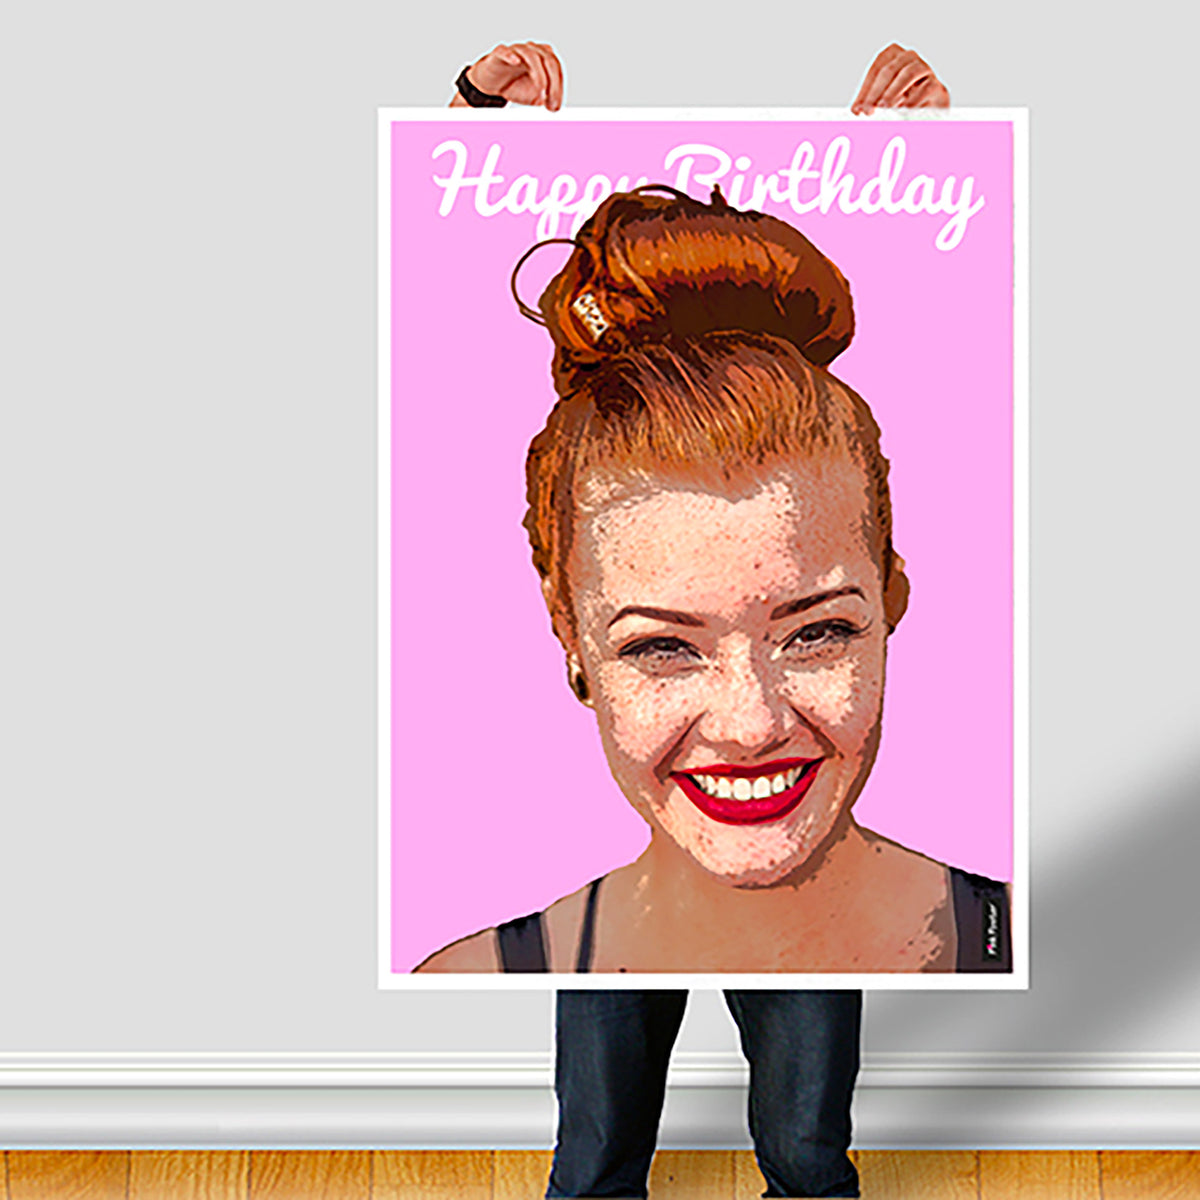 photo turned into custom Pop art poster of lady on a pink poster